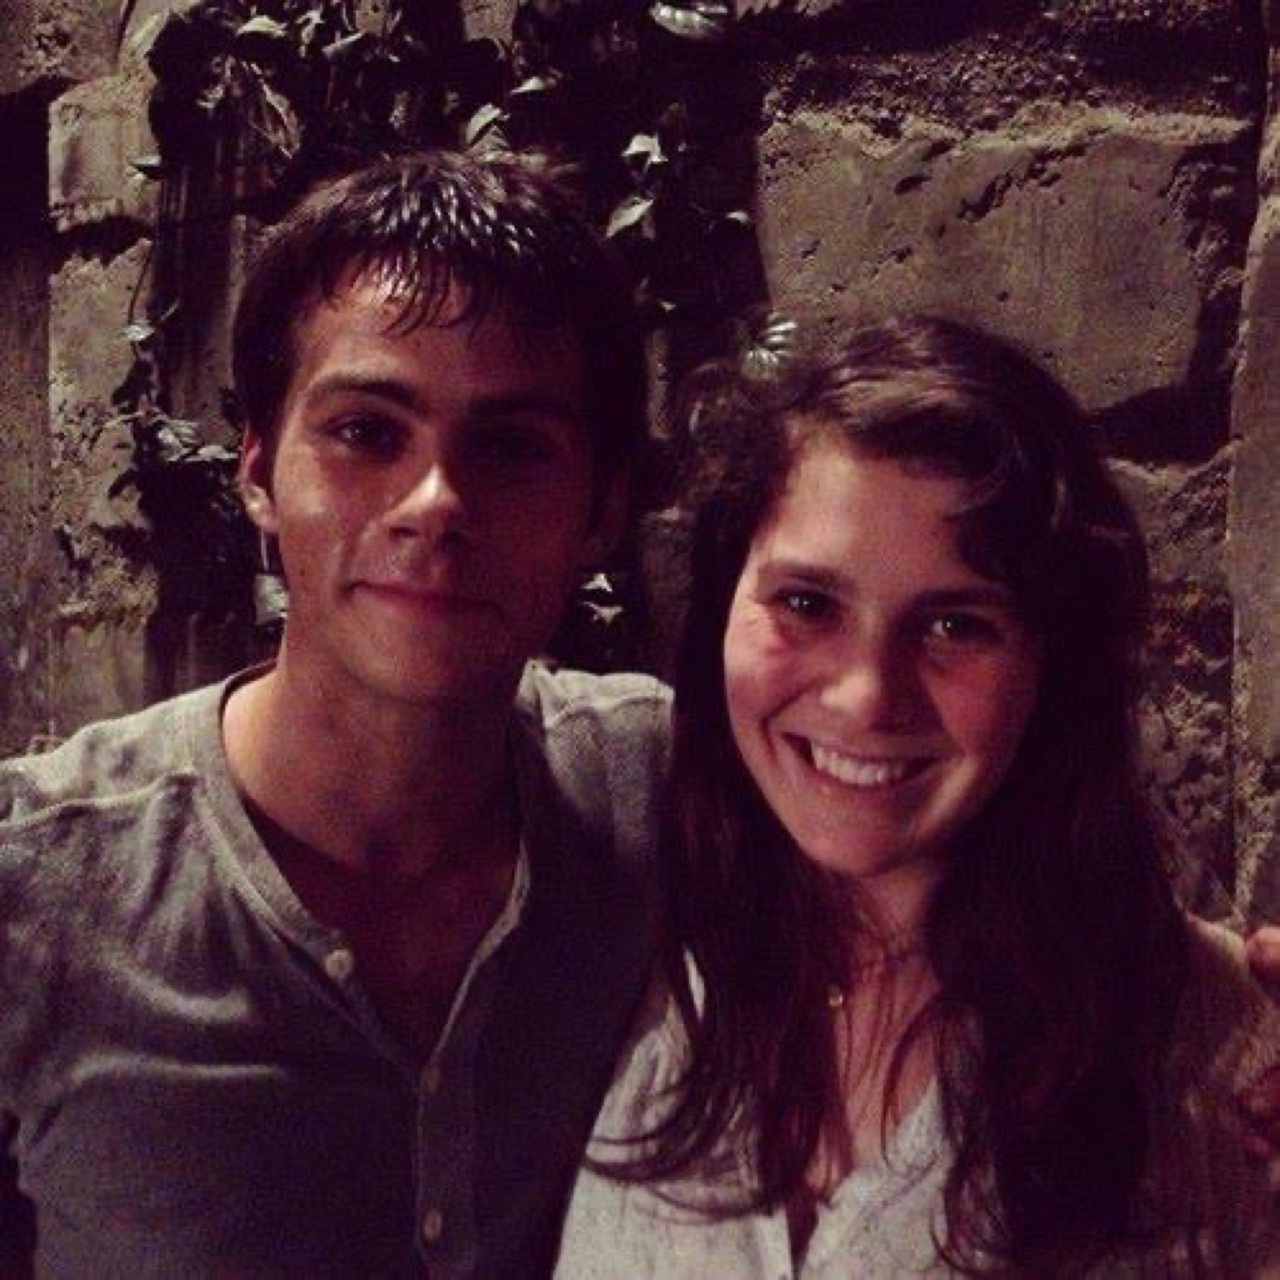 the maze runner, dylan o'brien, and dylanobrien image